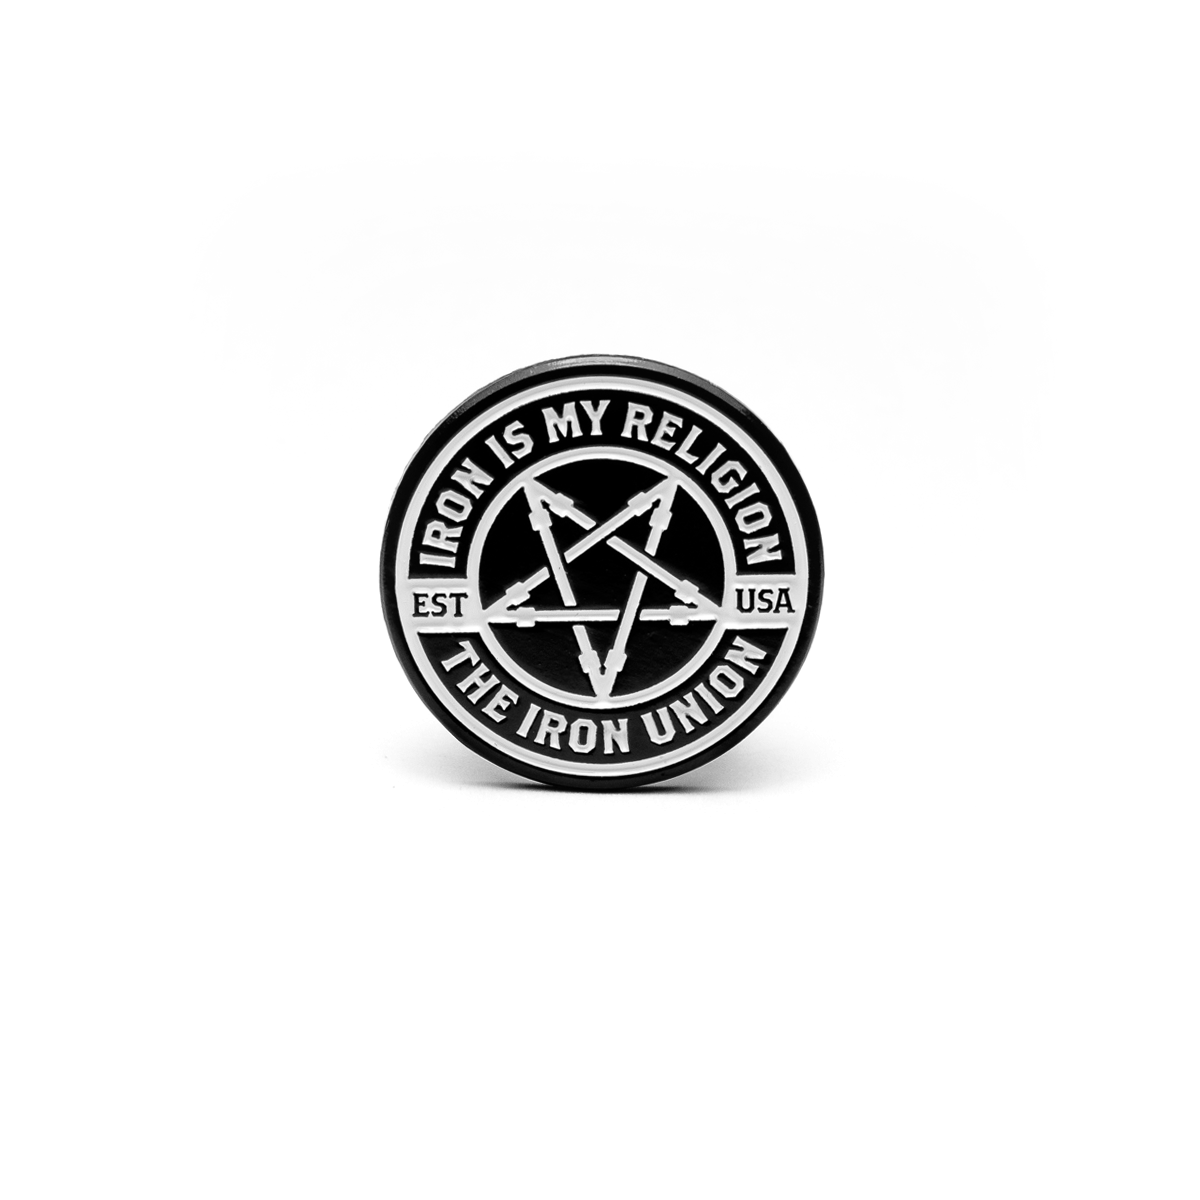 007. Iron Badge Pin - THE IRON UNION